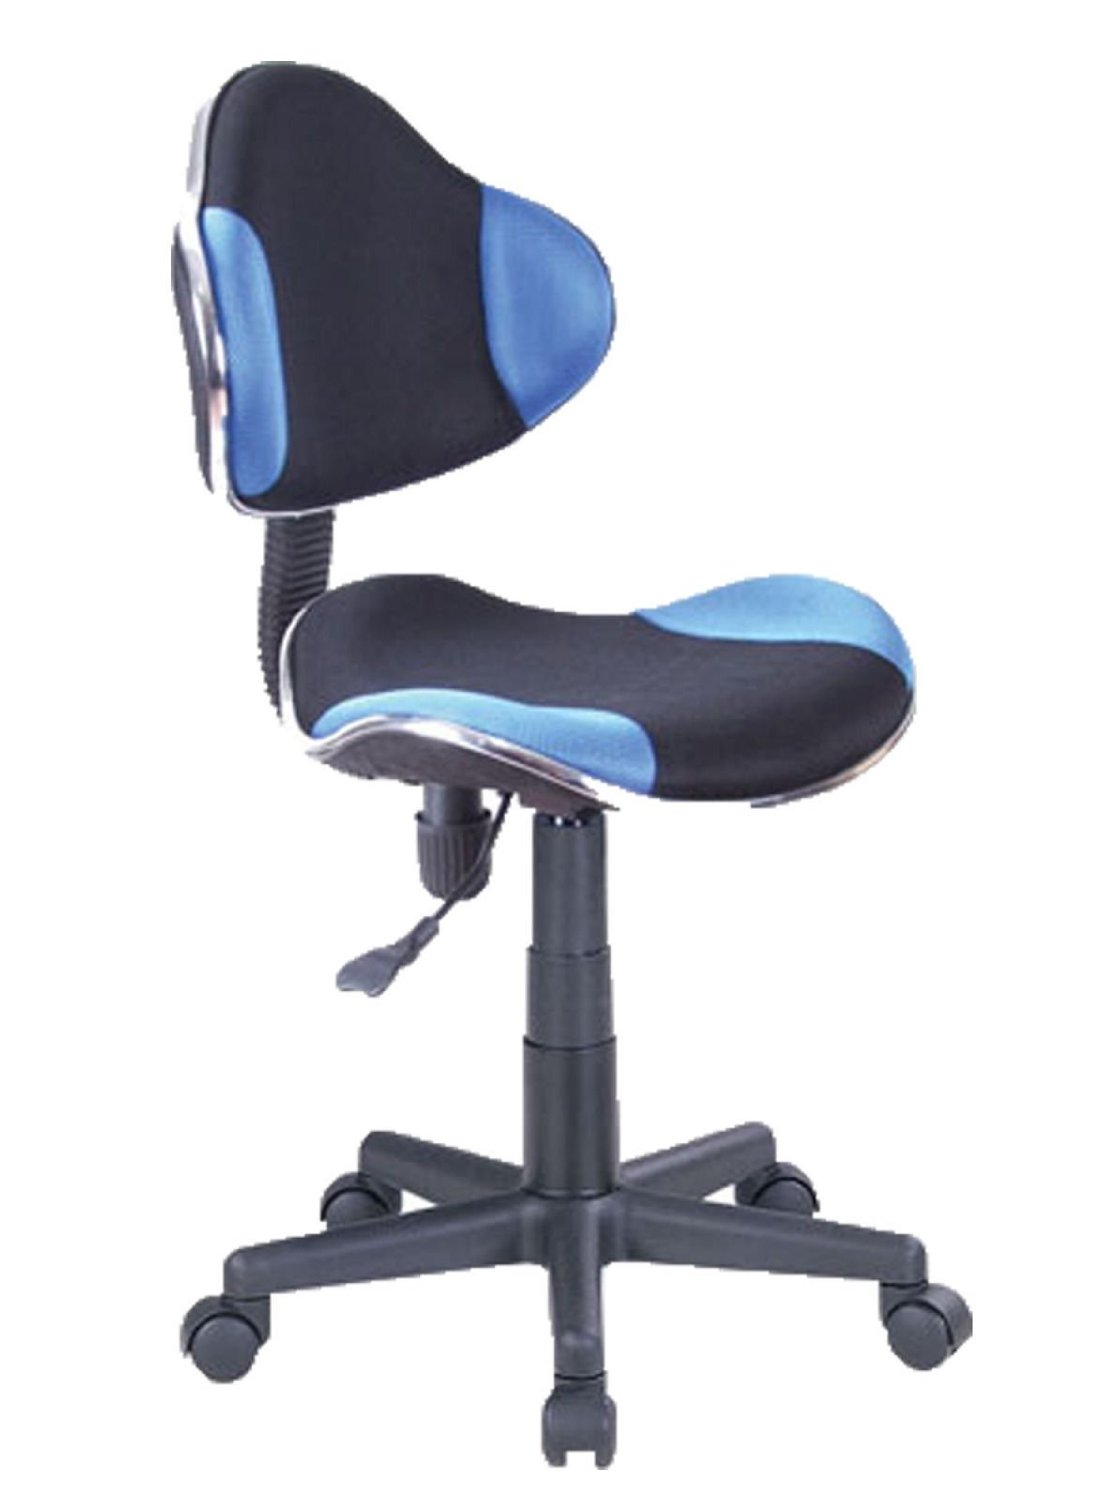 Computer Desk Office Chair W Mesh Fabric. (Black & Blue)